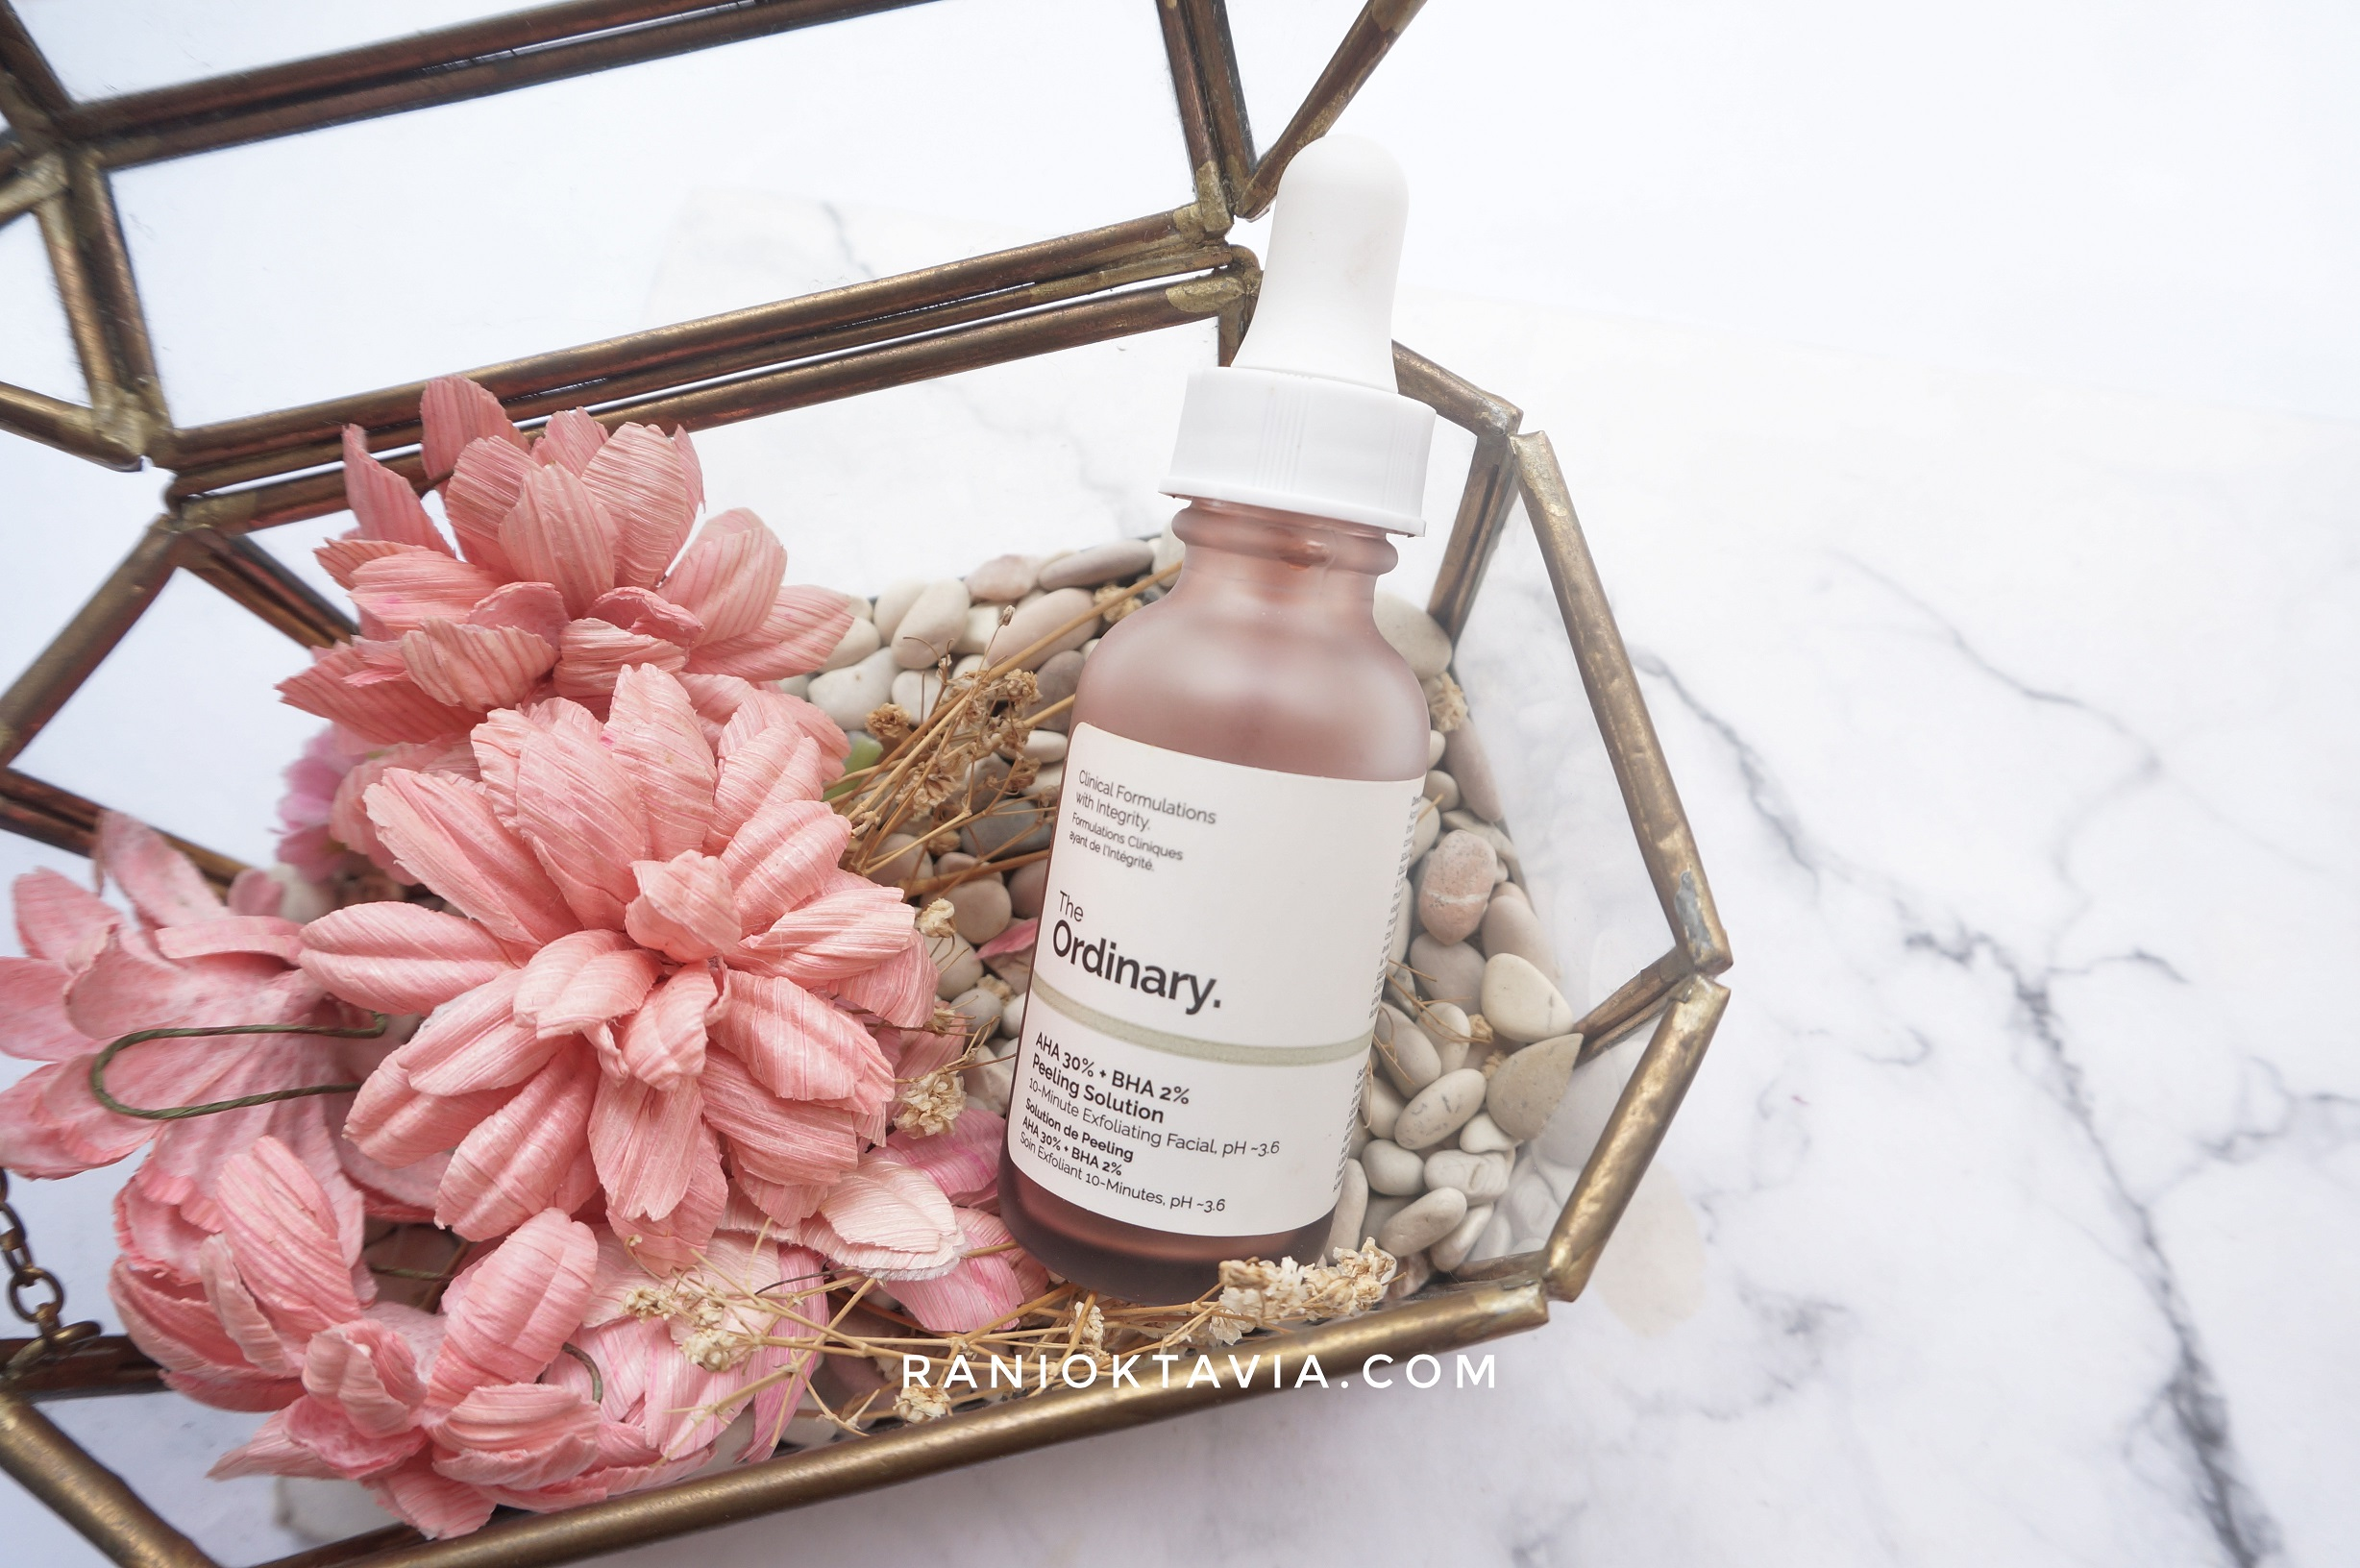 Review The Ordinary Aha 30 Bha 2 Peeling Solution Beauty Blog By Rani Oktavia